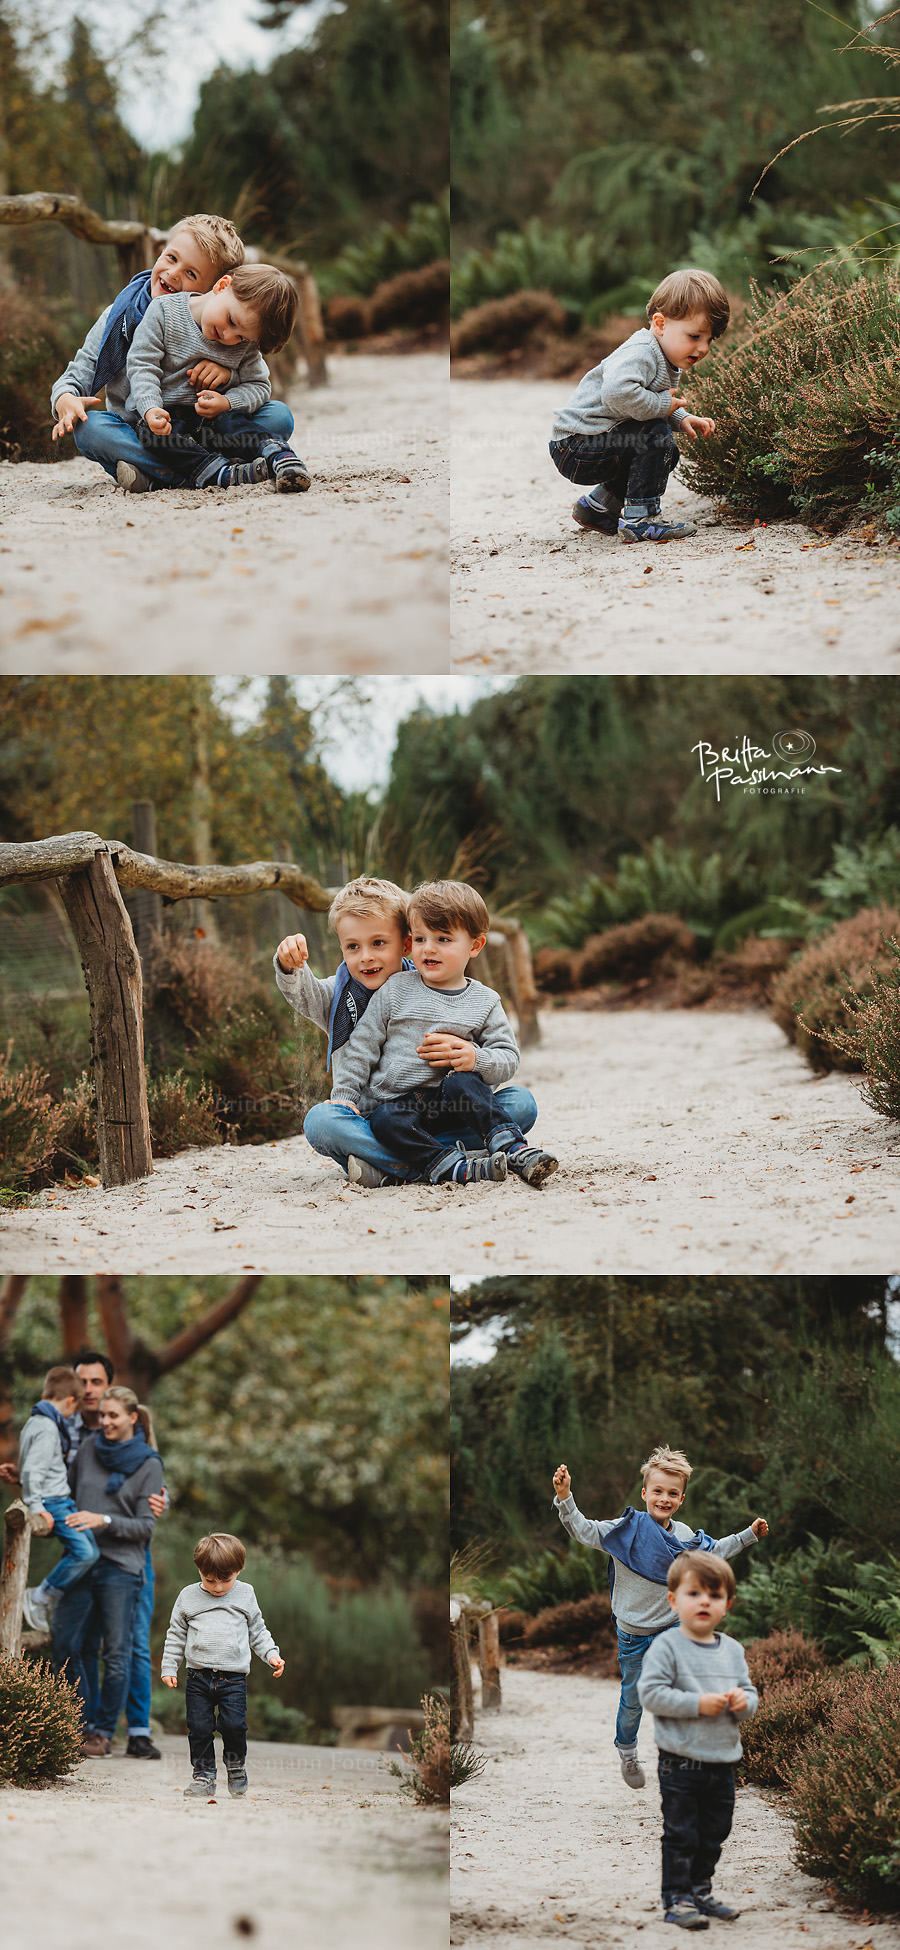 Familienfotos-Dortmund-Fotoshooting-Outdoor-Kinderfotos-Bochum-02